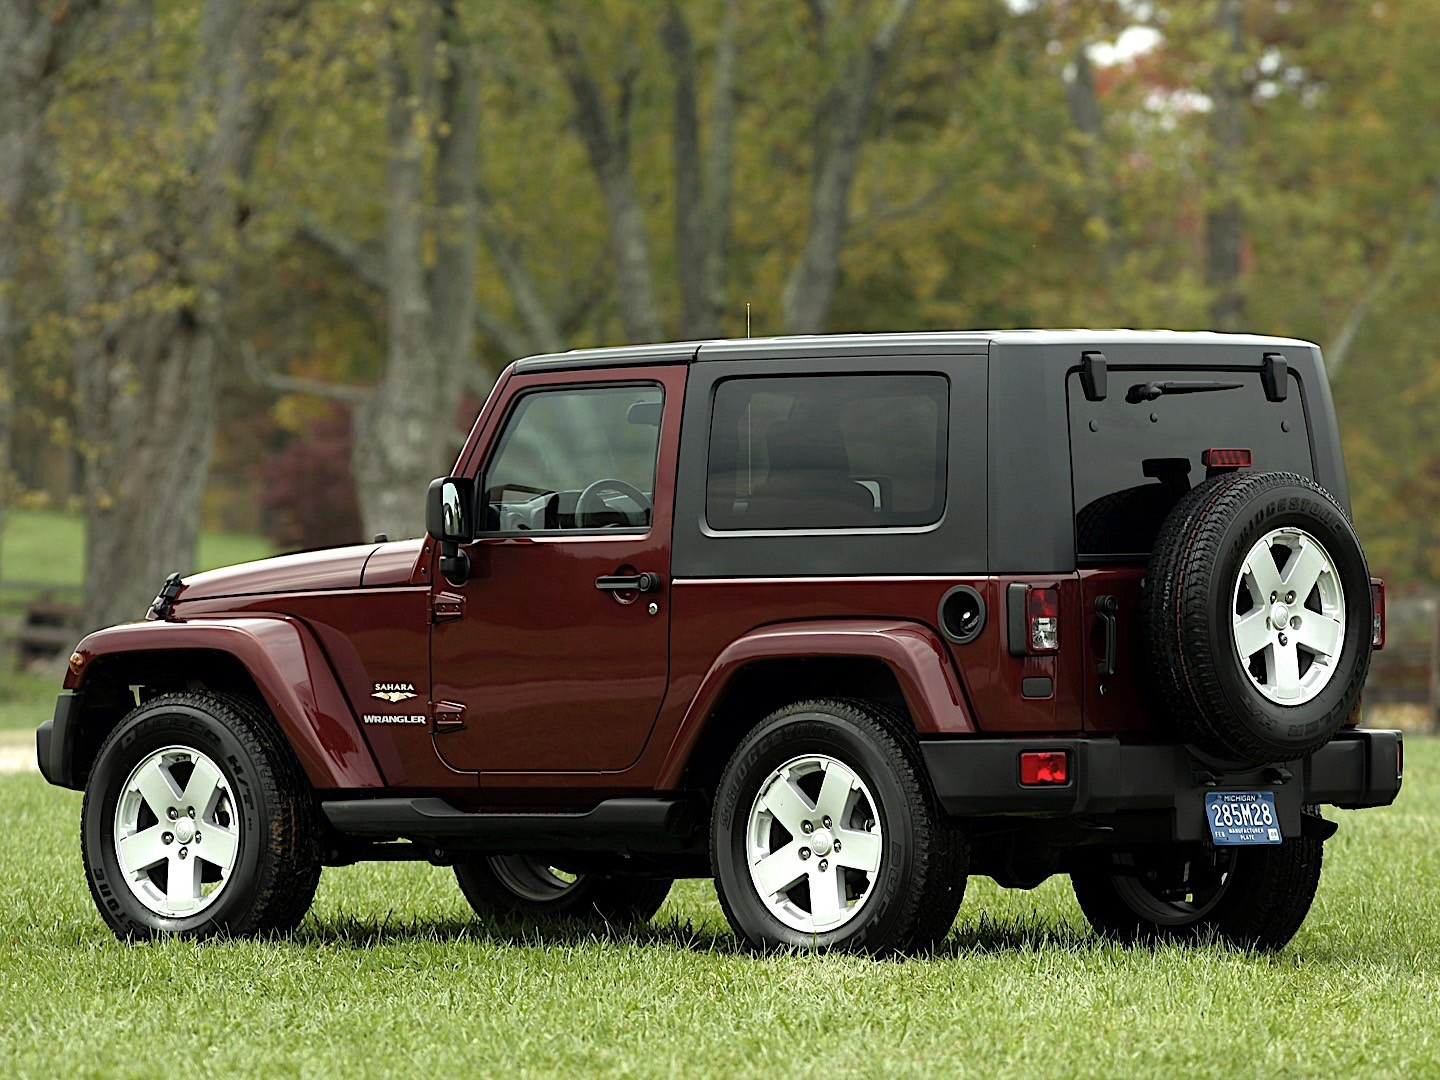 JEEP Wrangler specs & photos - 2006, 2007, 2008, 2009, 2010, 2011, 2012, 2013, 2014, 2015, 2016 ...